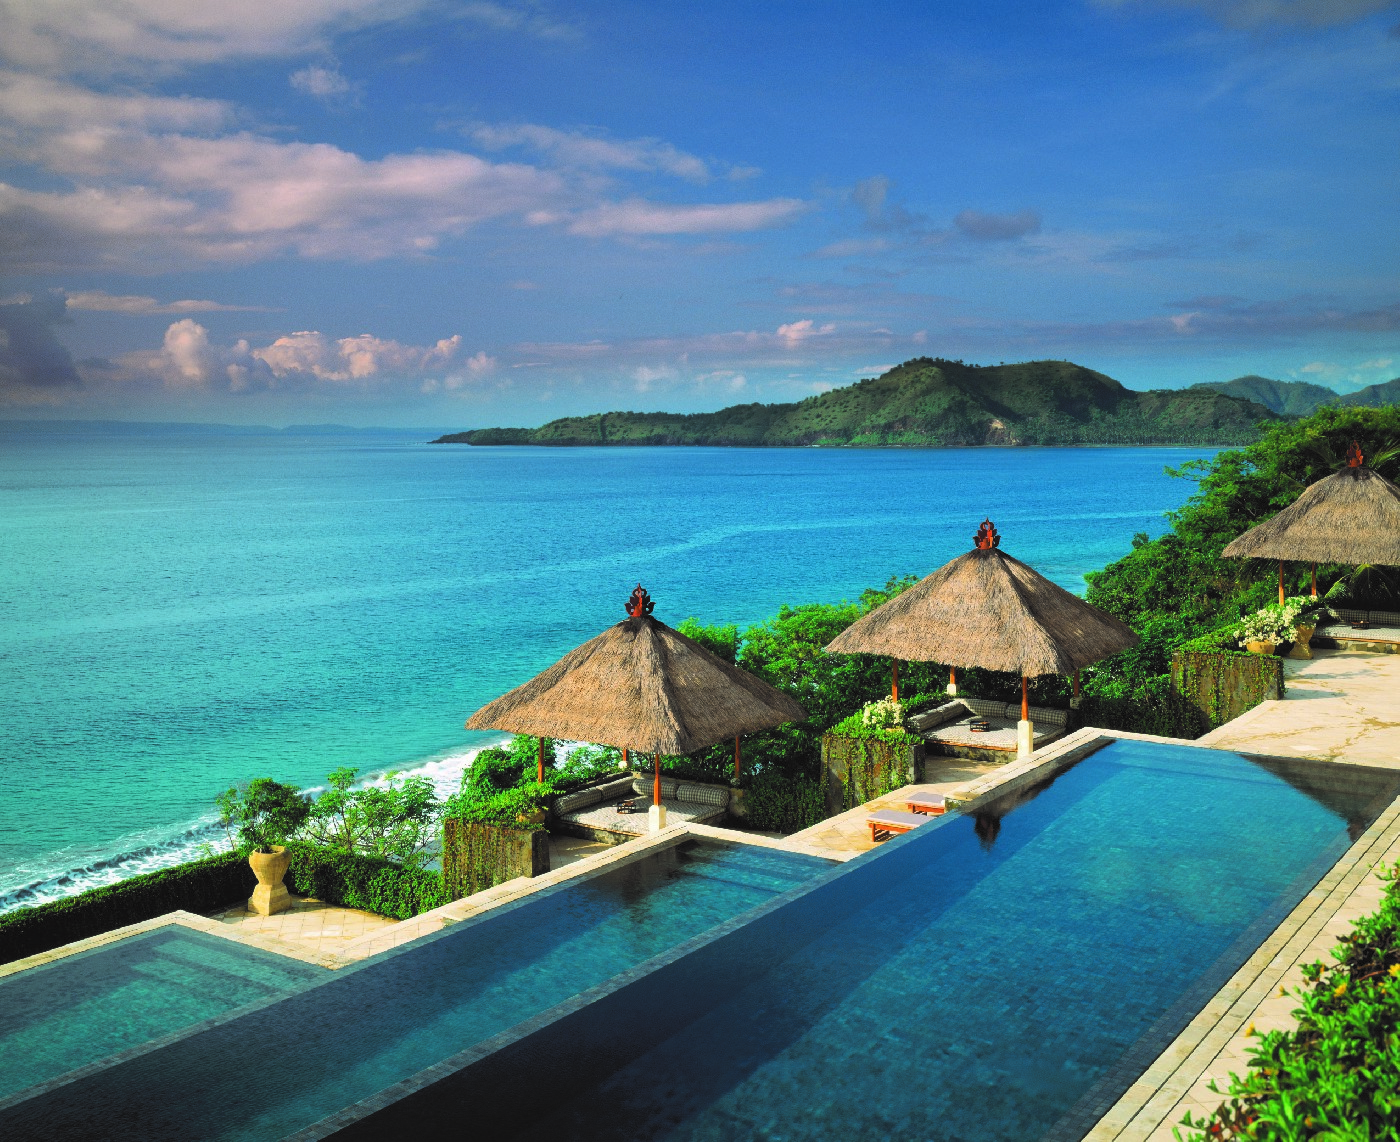 Infinity swimming pools with ocean and mountain views